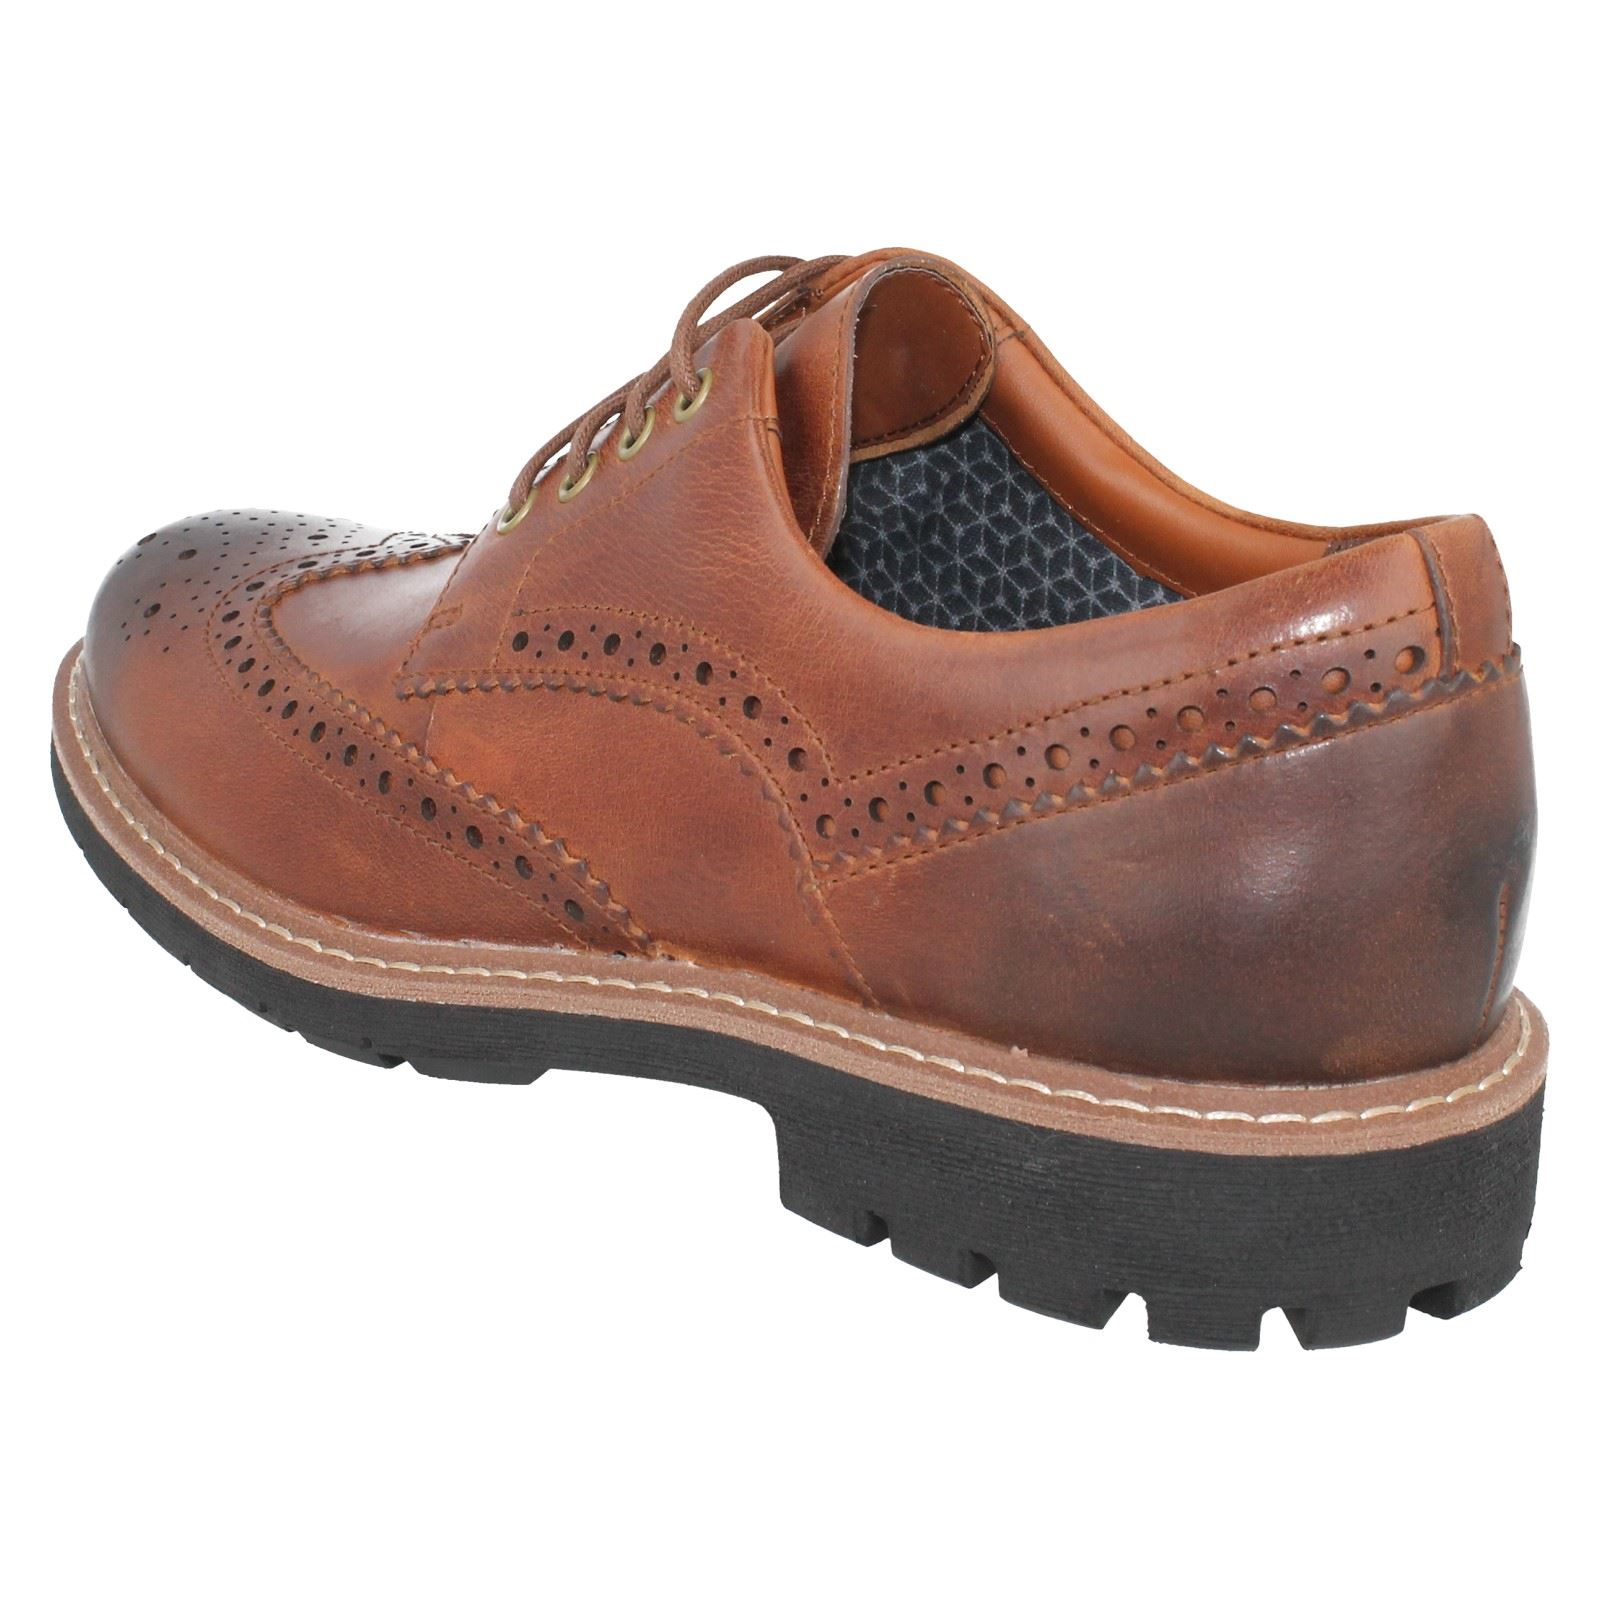 Men's Clarks Brogue Casual Lace Up Shoes Style - Batcombe Wing